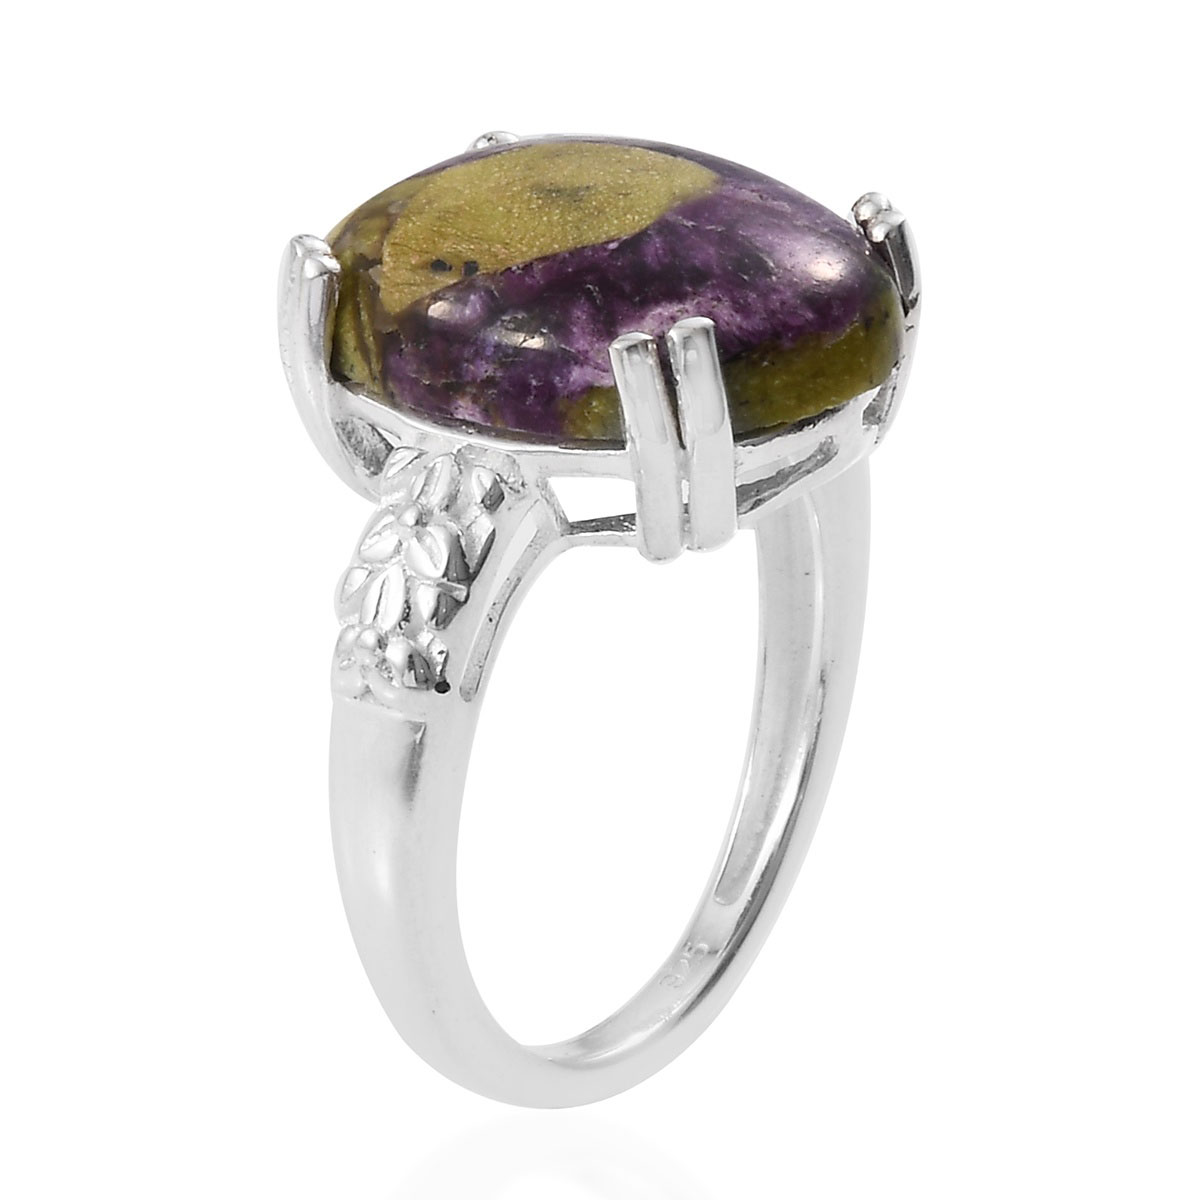 Tasmanian Stichtite Ring in Sterling Silver (Size 10.0) 6.00 ctw